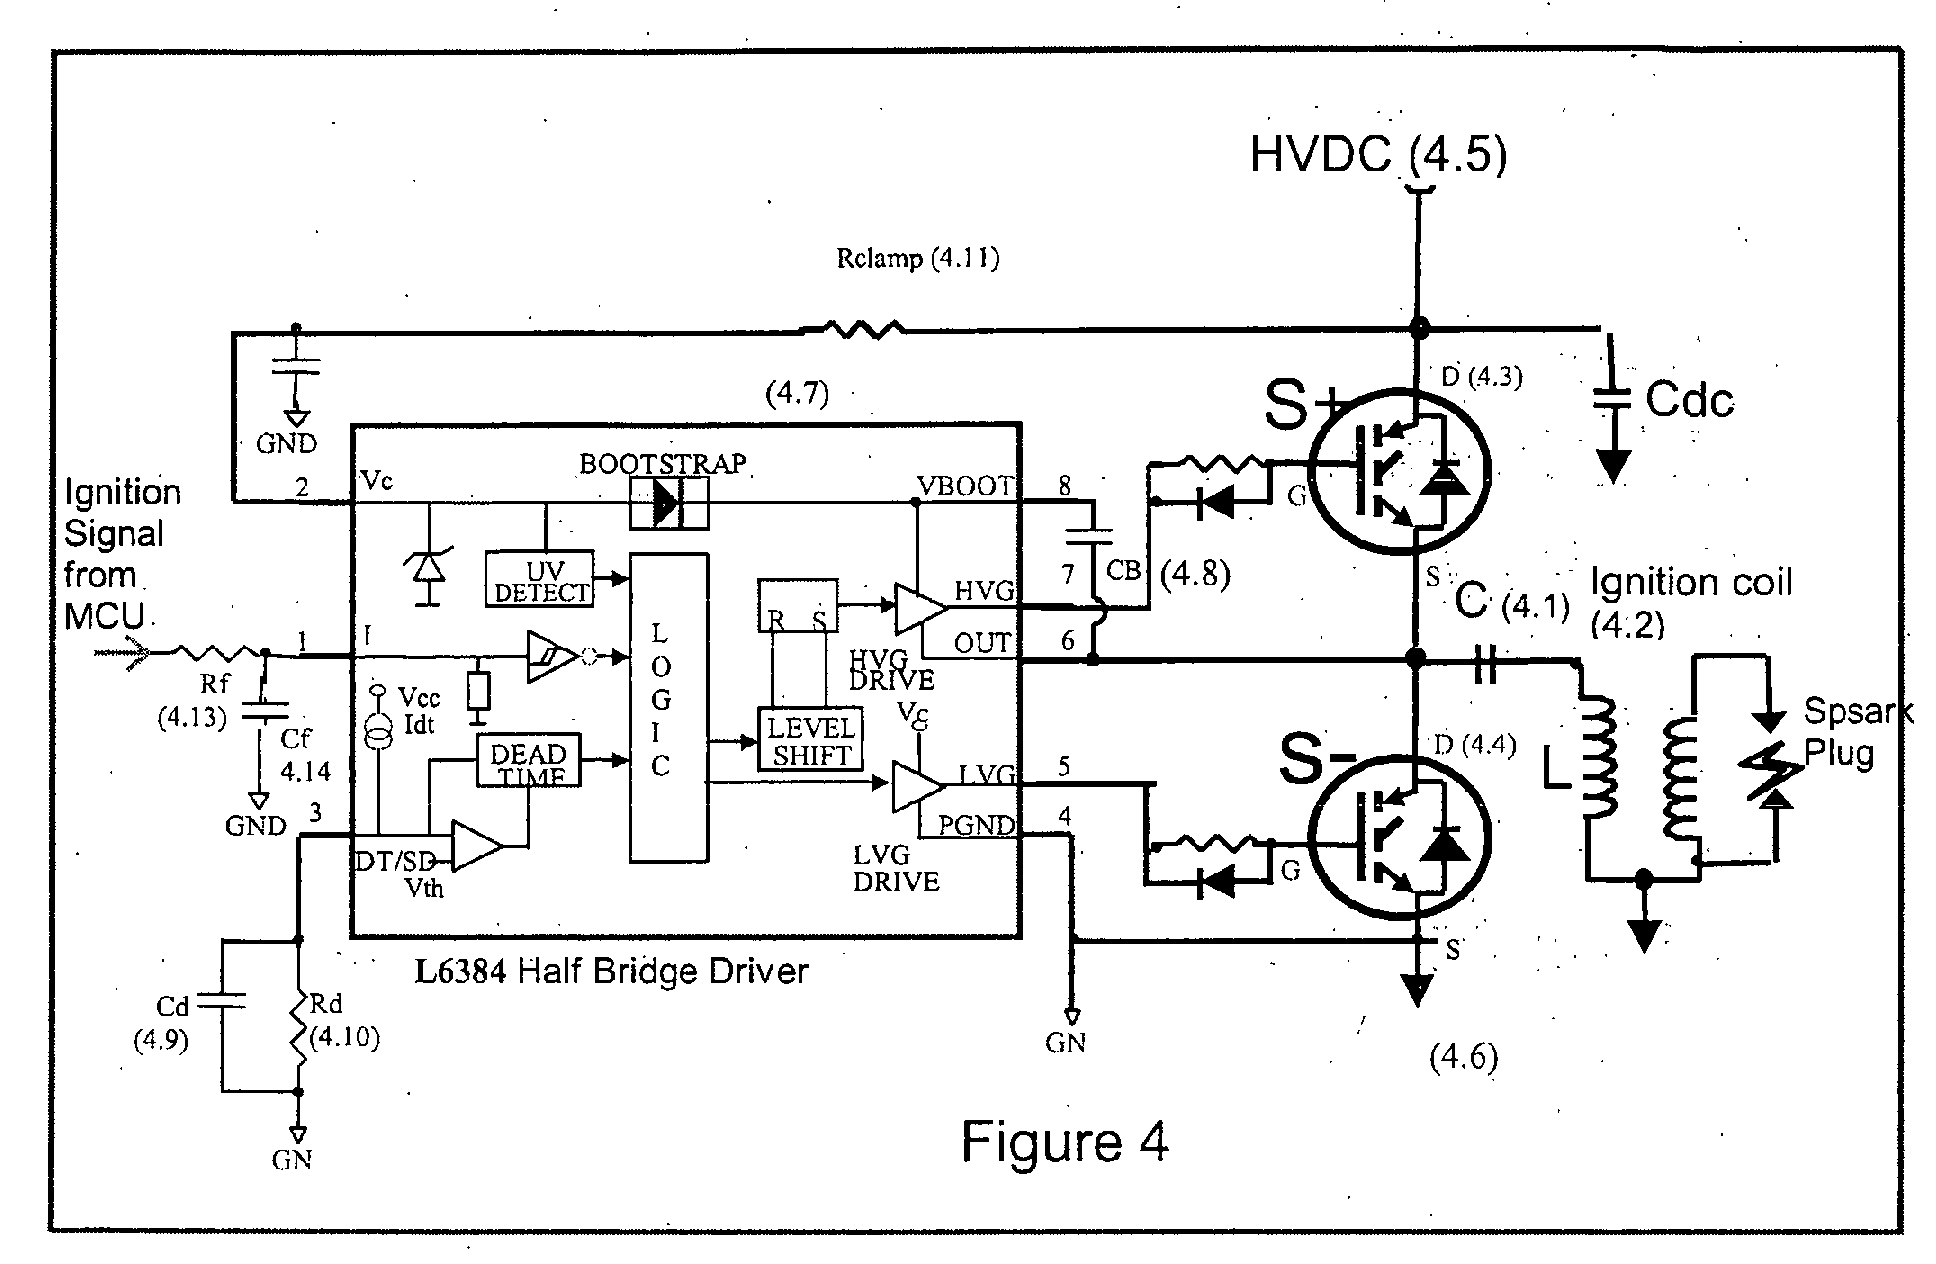 ignition wiring diagram on capacitive discharge ignition schematic